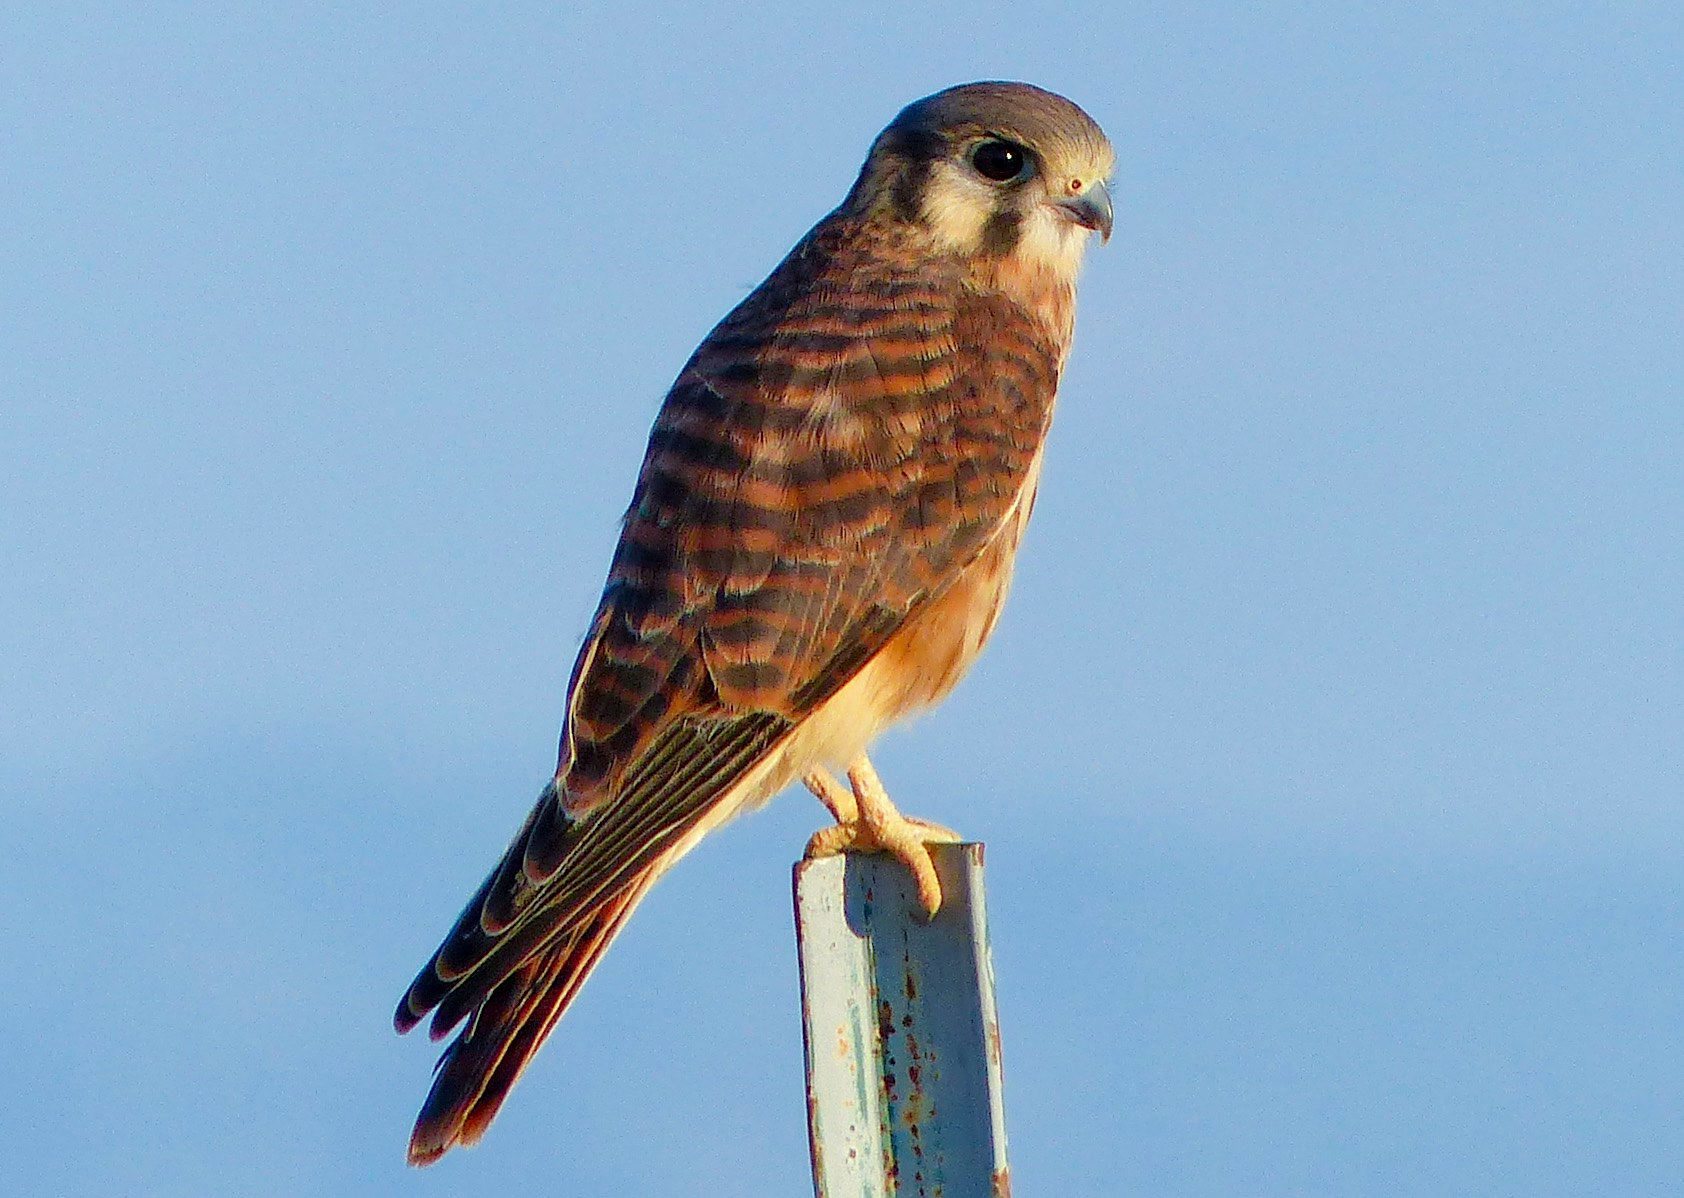 American Kestrel at Valle de Oro National Wildlife Refuge